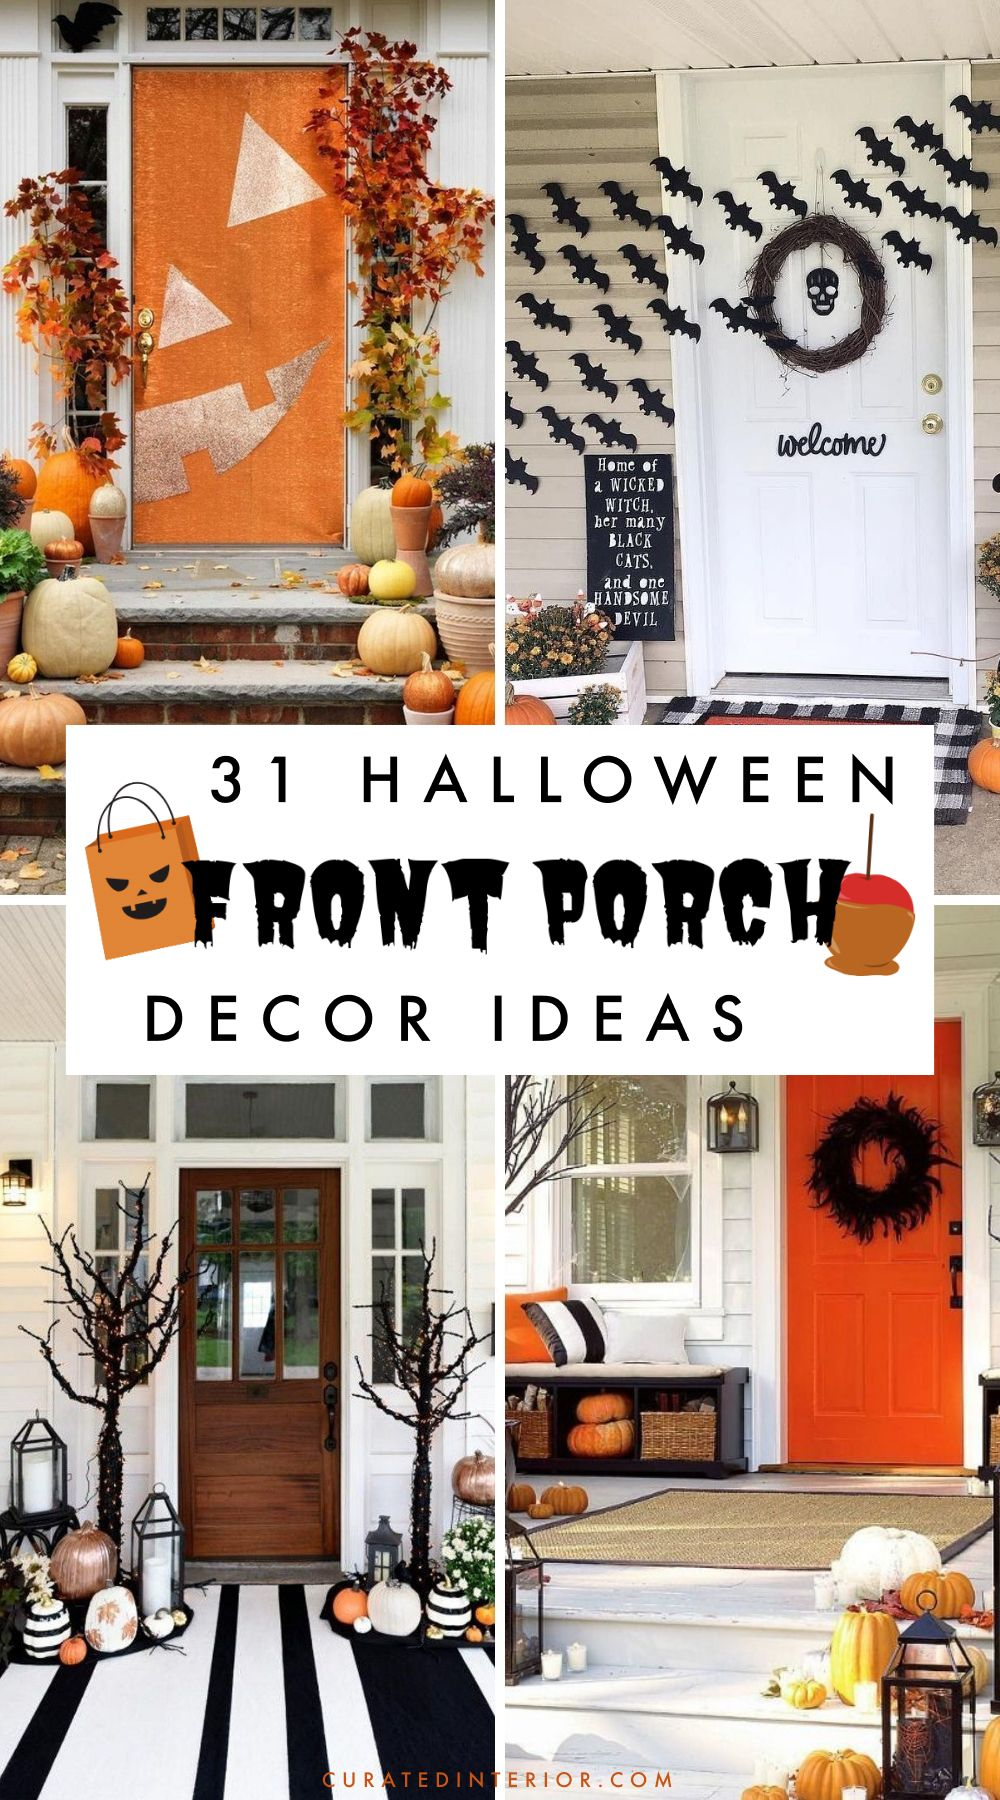 31 Halloween Front Porch Decorating Ideas